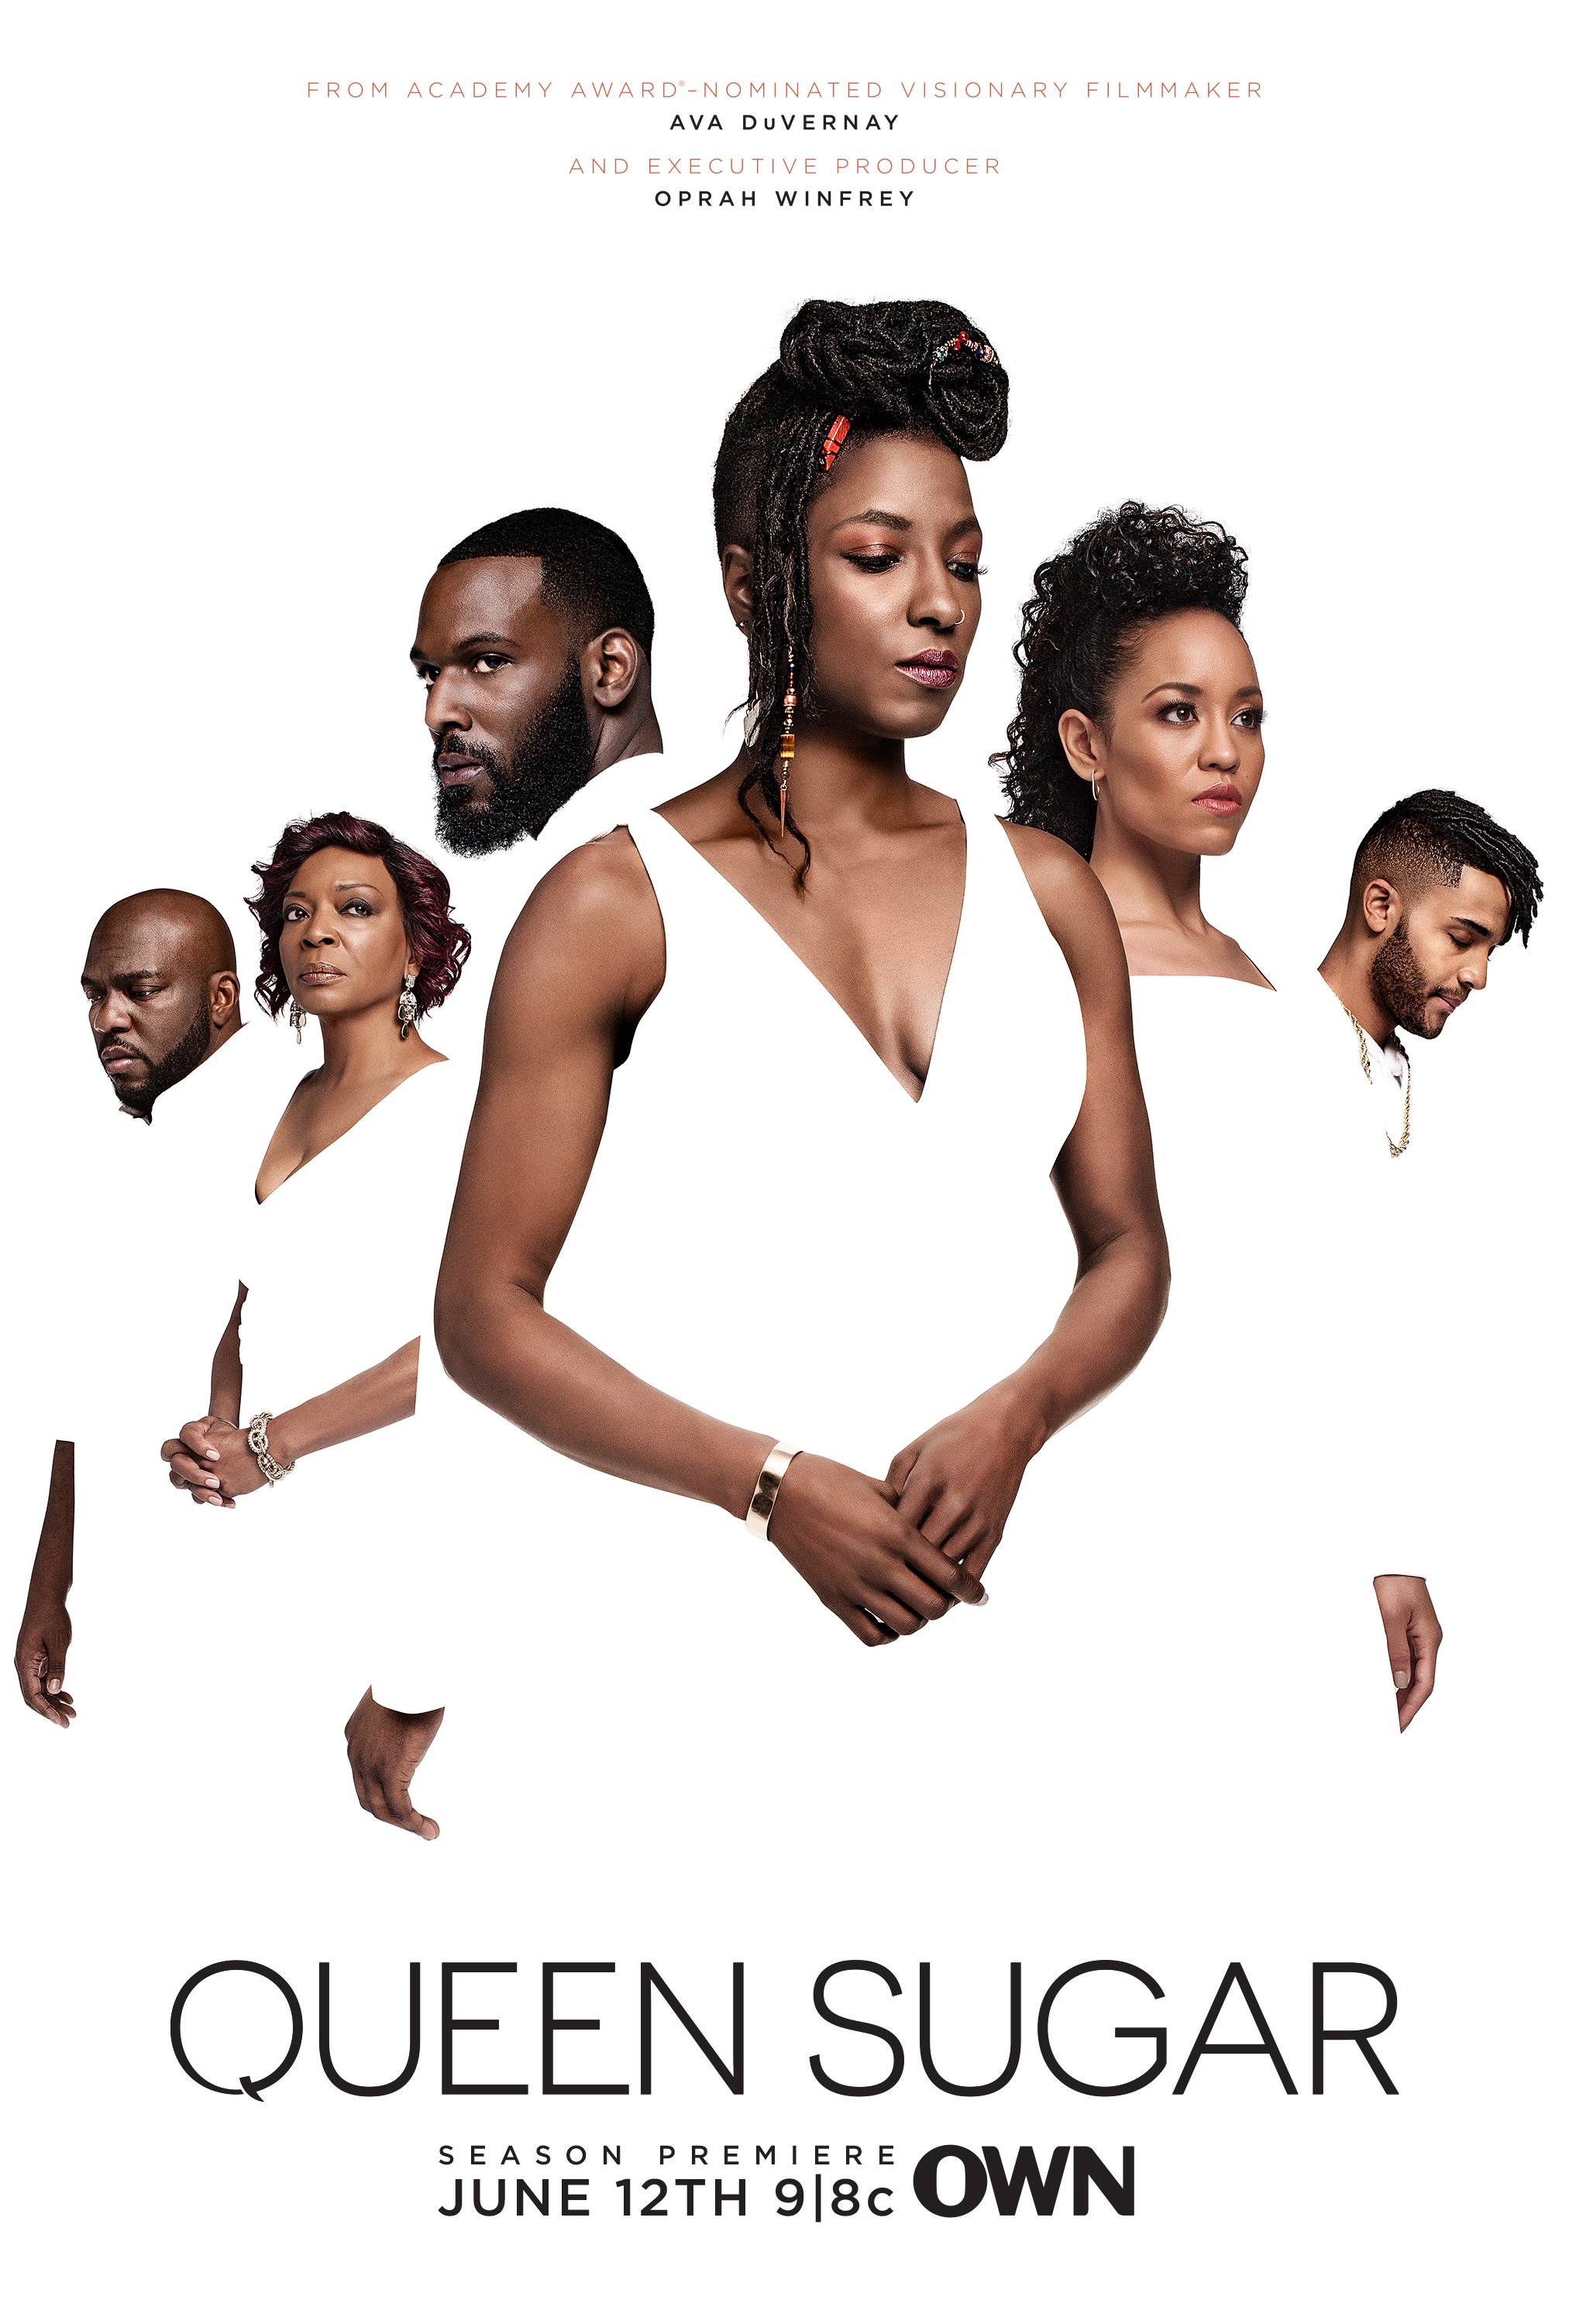 'Queen Sugar' Season 4 Trailer Drops And Everybody's Mad At…[WATCH]